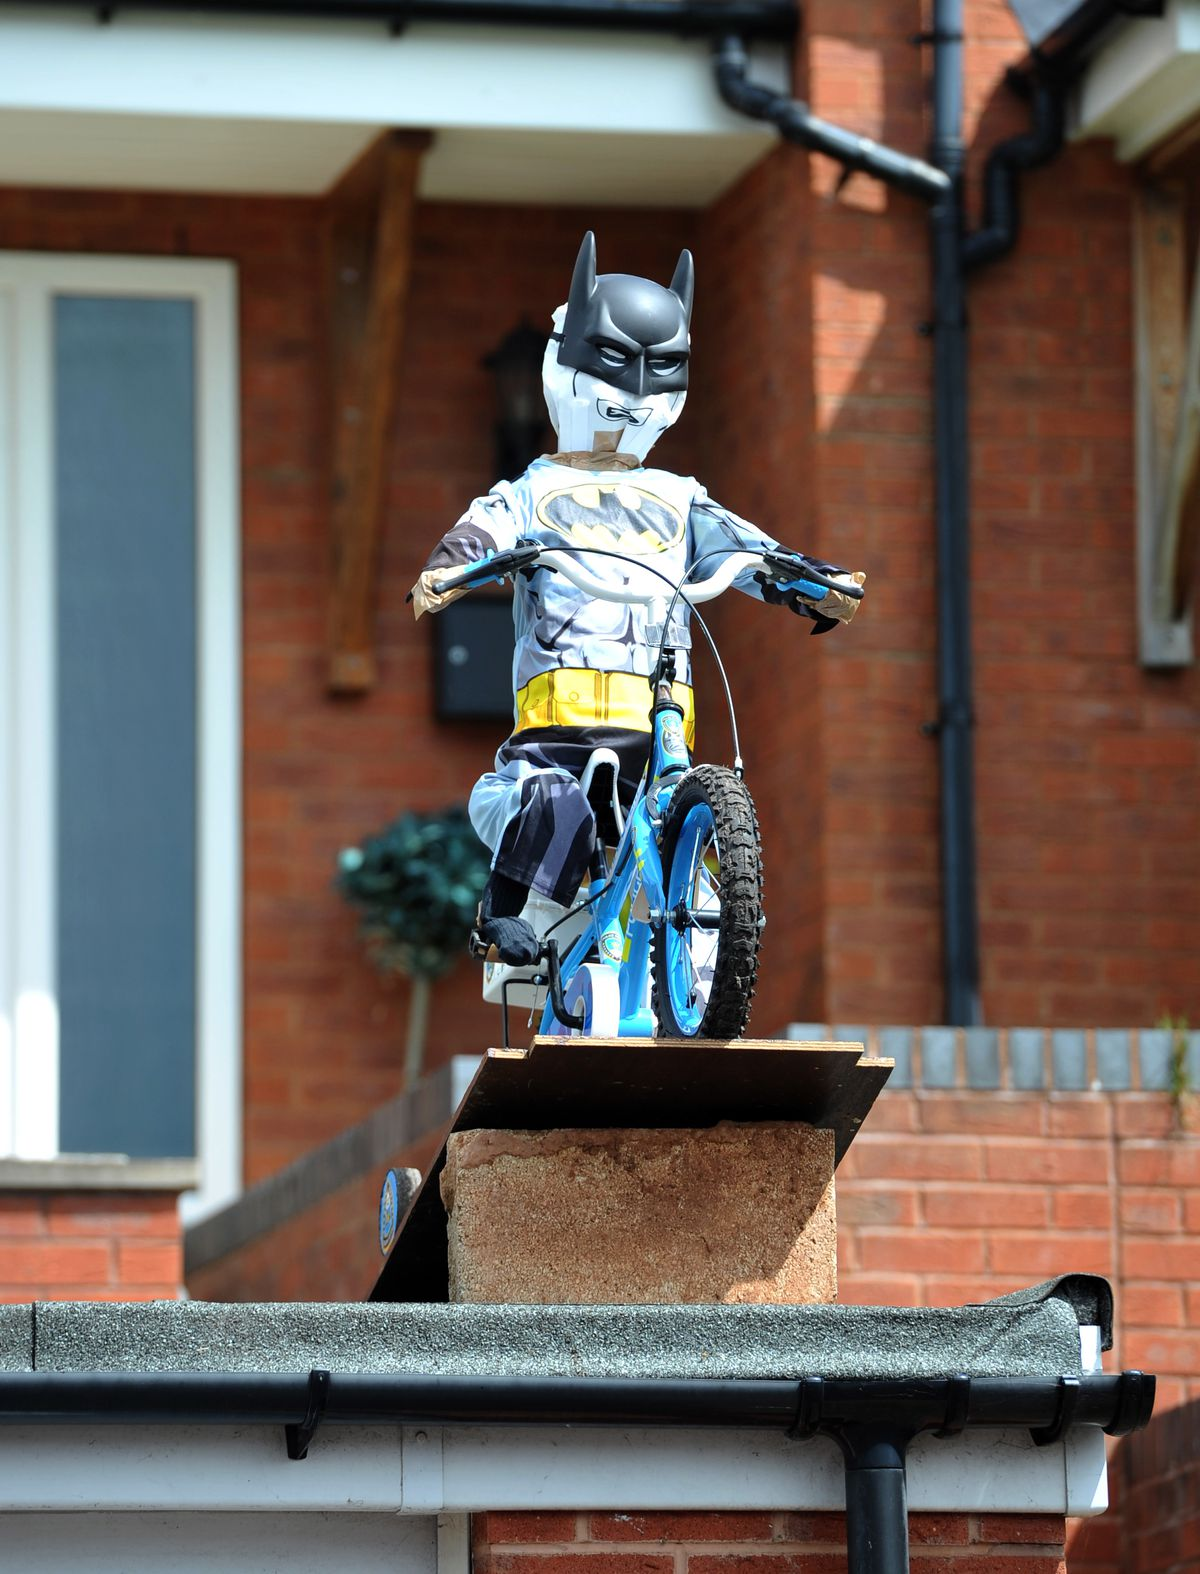 Dozens of scarecrows line the streets of Cresswell, Stafford, for a scarecrow competition